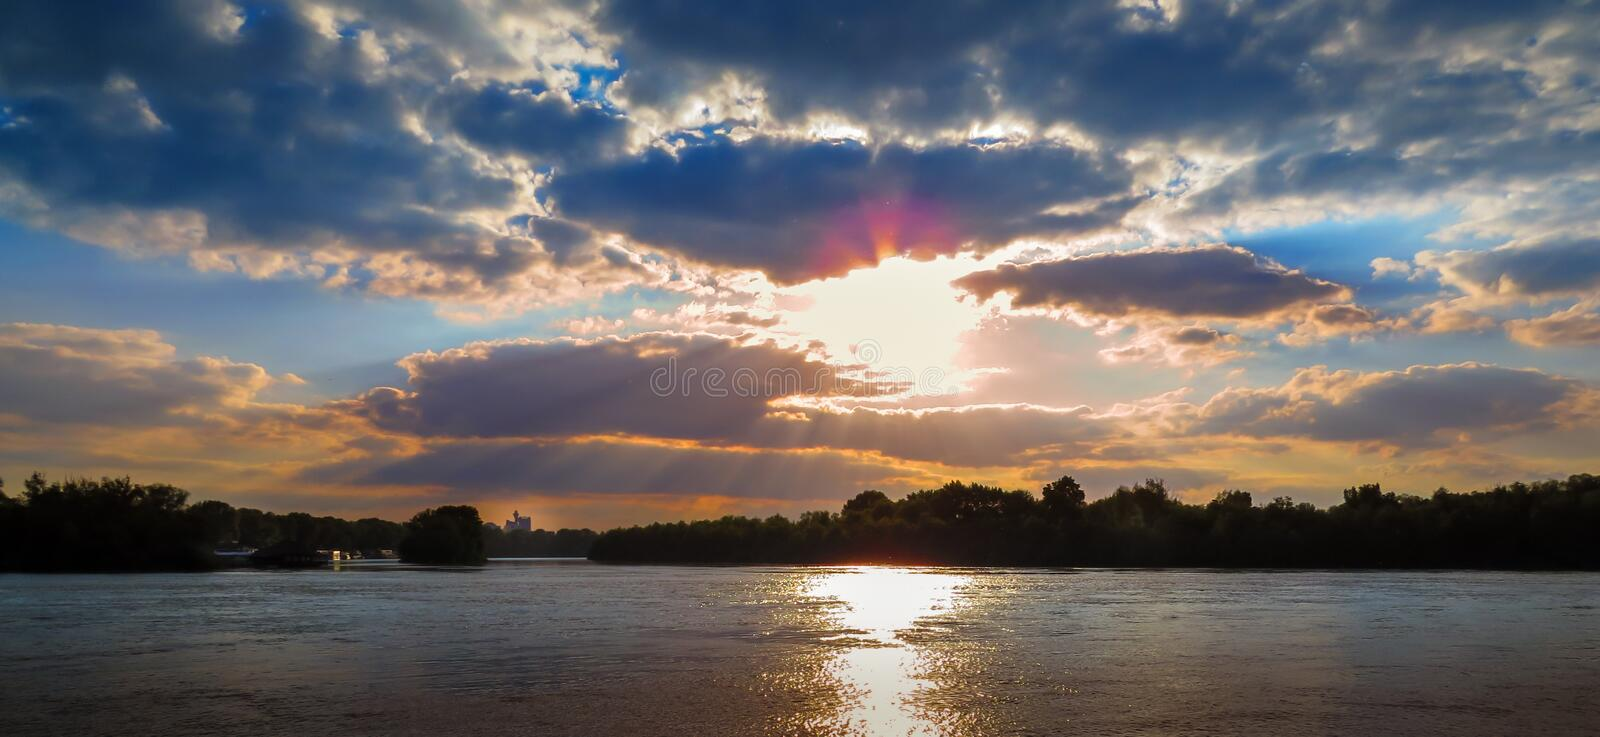 Sunset over a water stock image